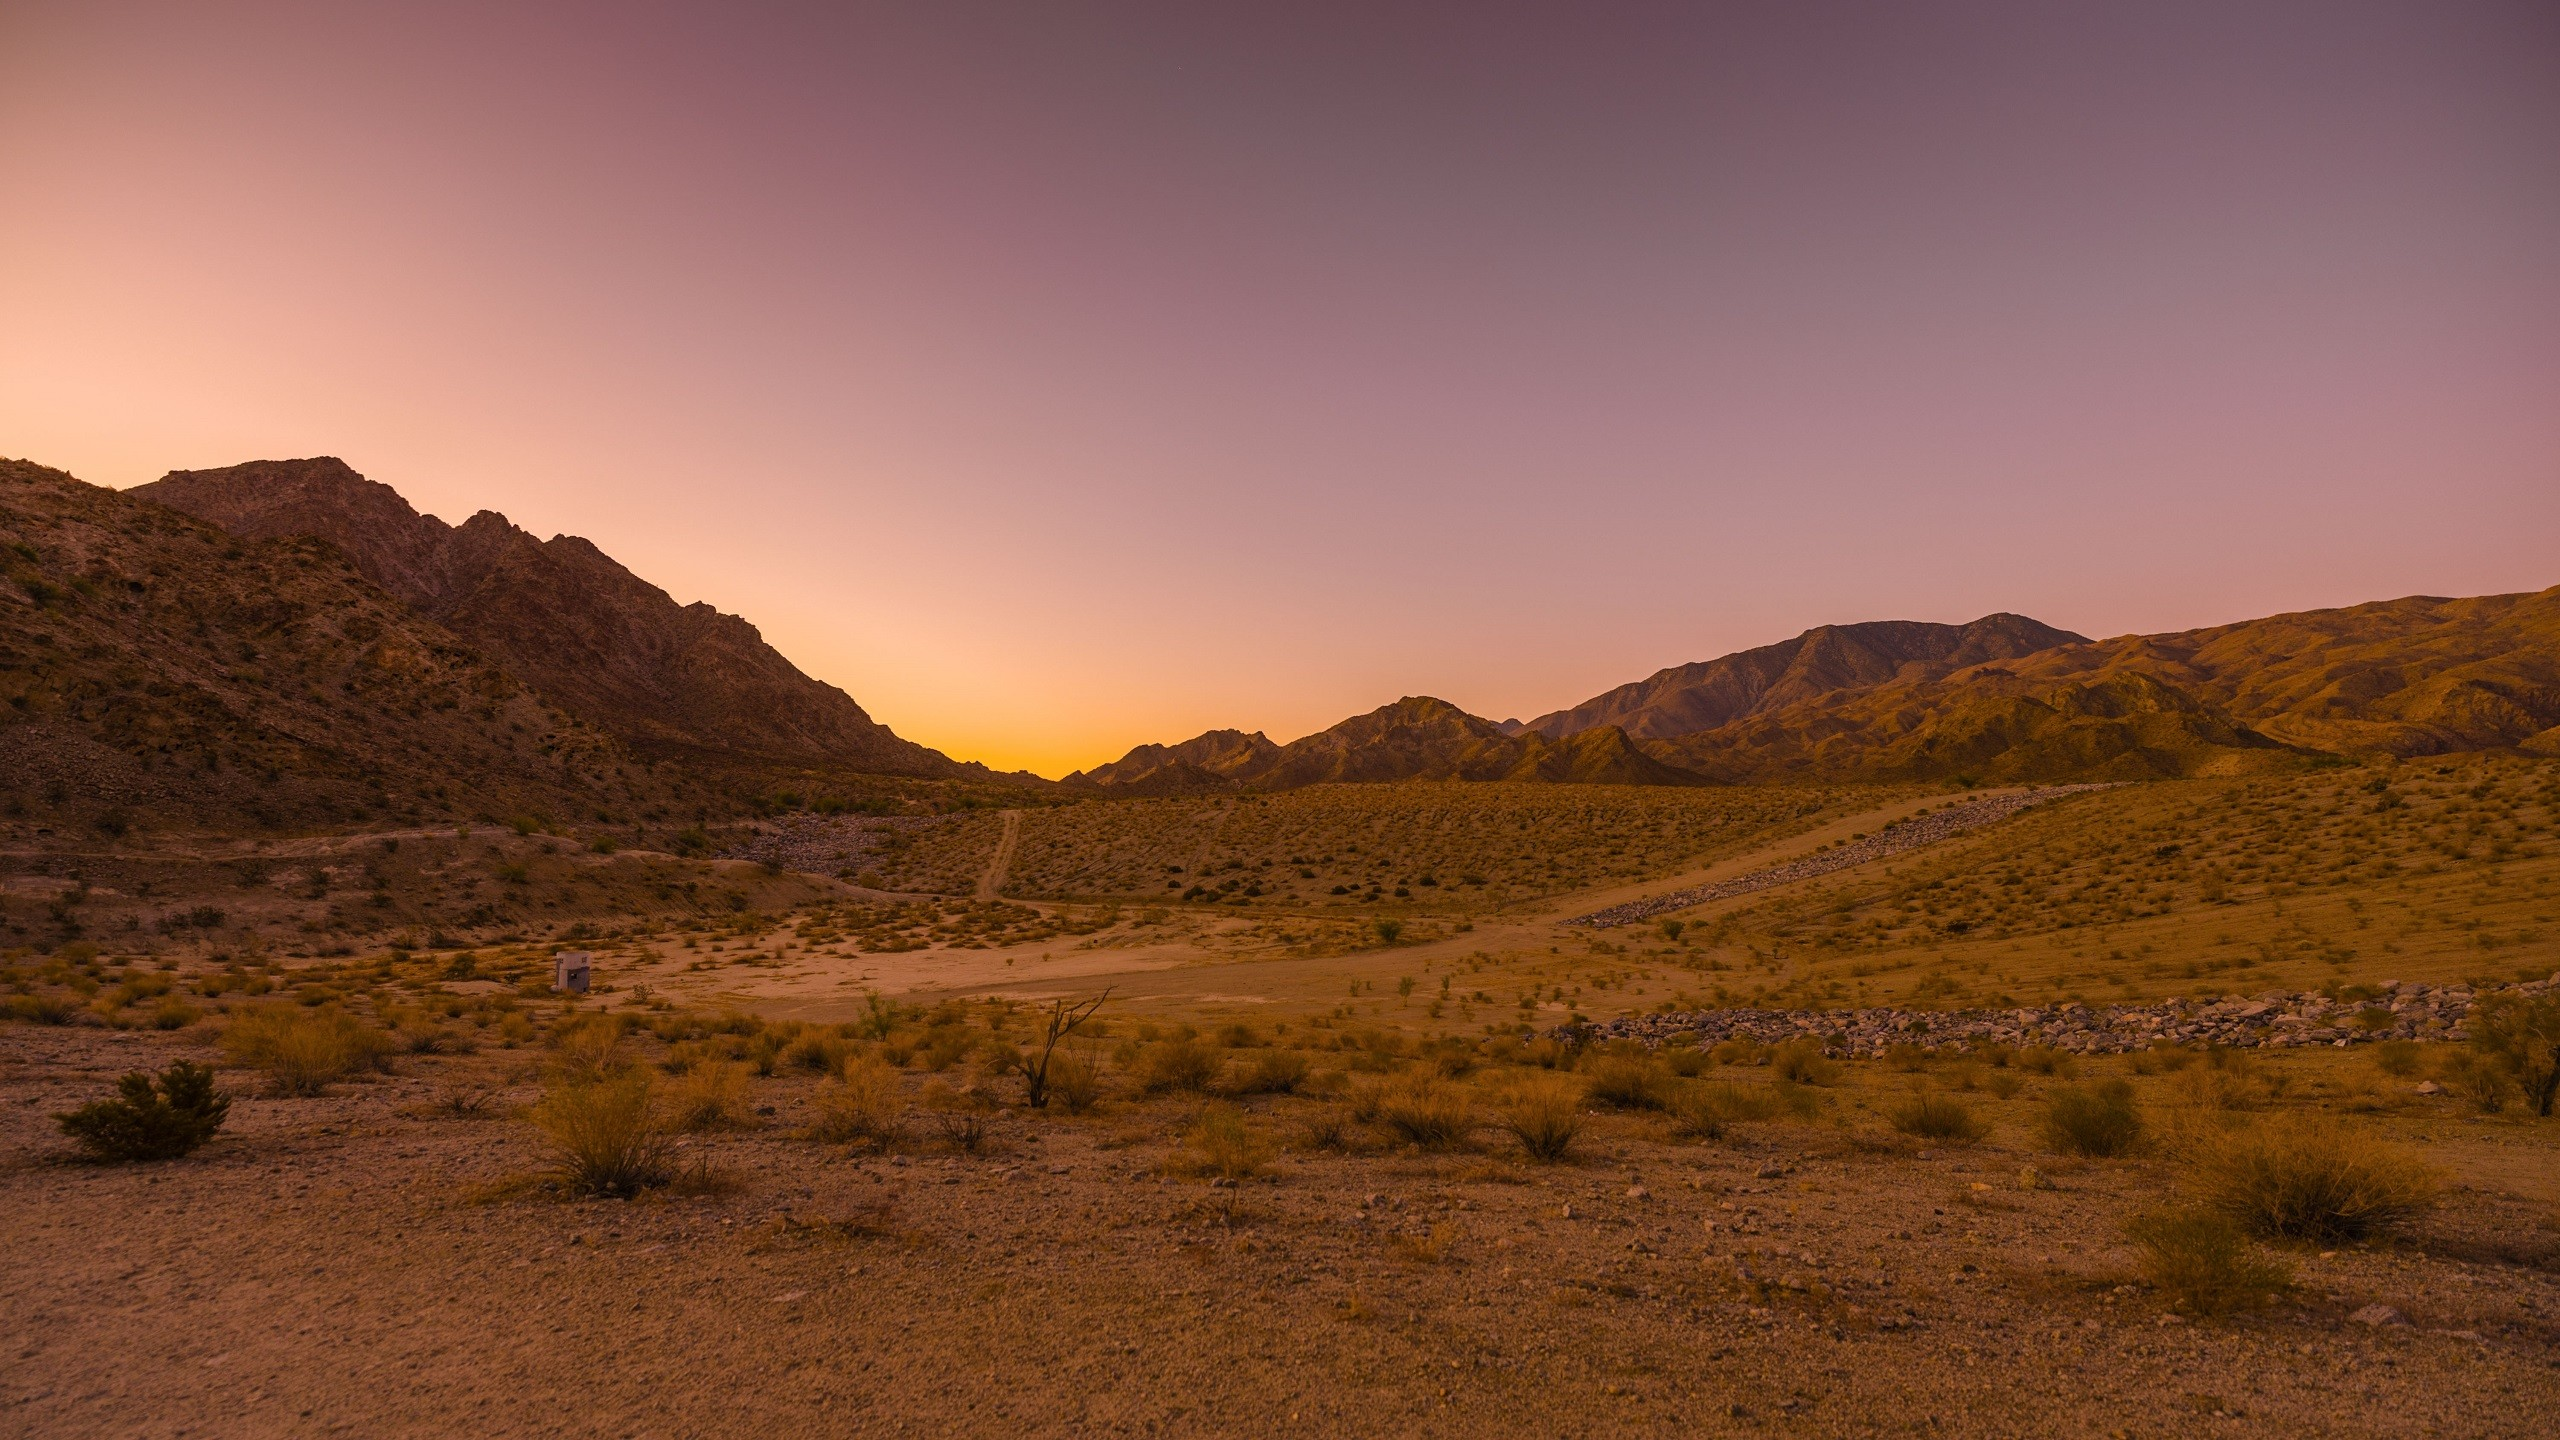 Sunrise over desert hills, photographed with the Sigma fp camera